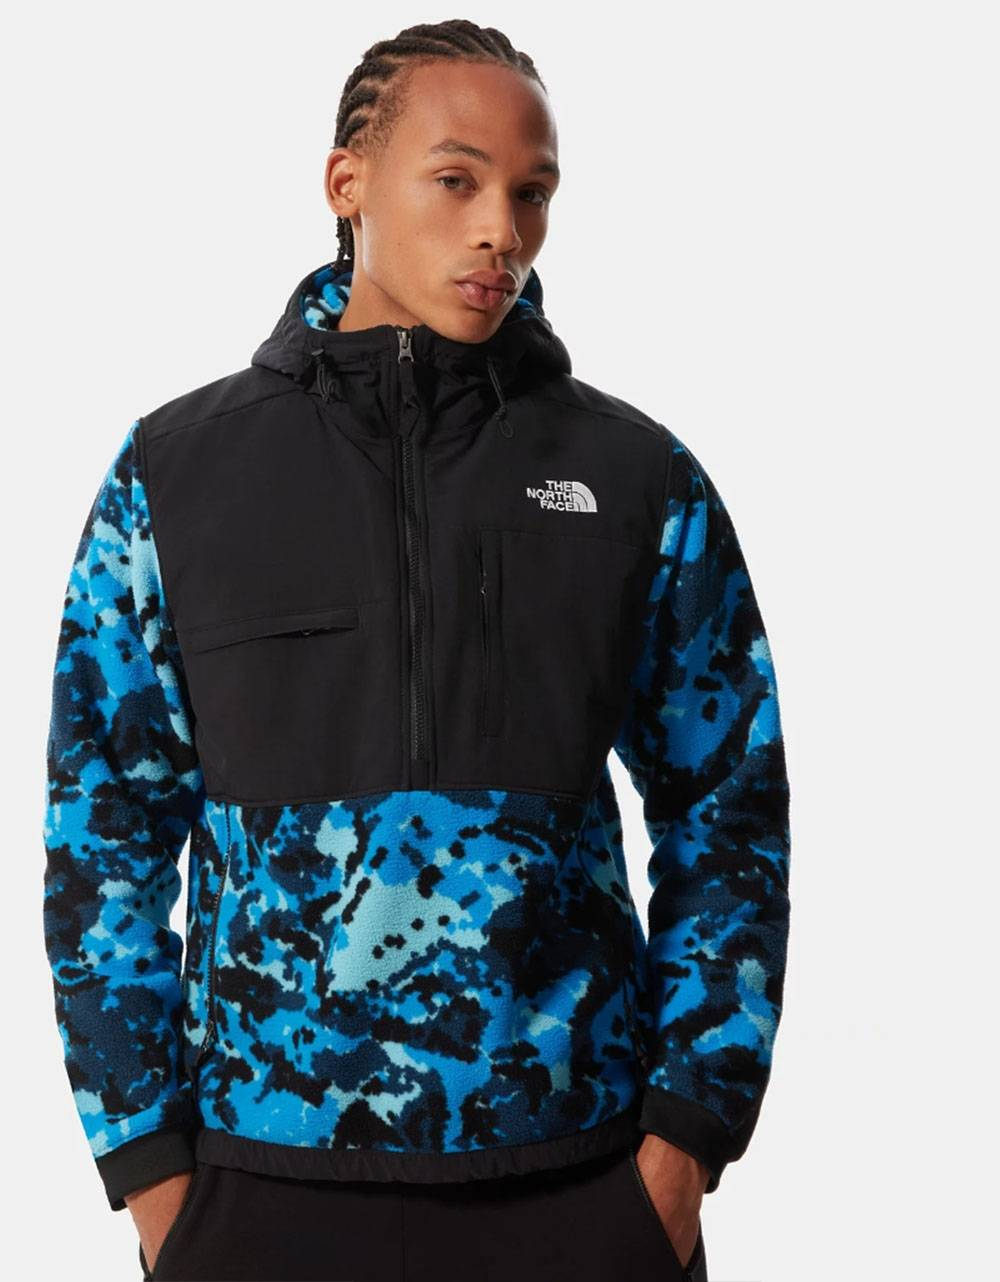 The North Face denali 2 anorak sherpa jacket - clear lake blue digicamo THE NORTH FACE Jacket 160,00€